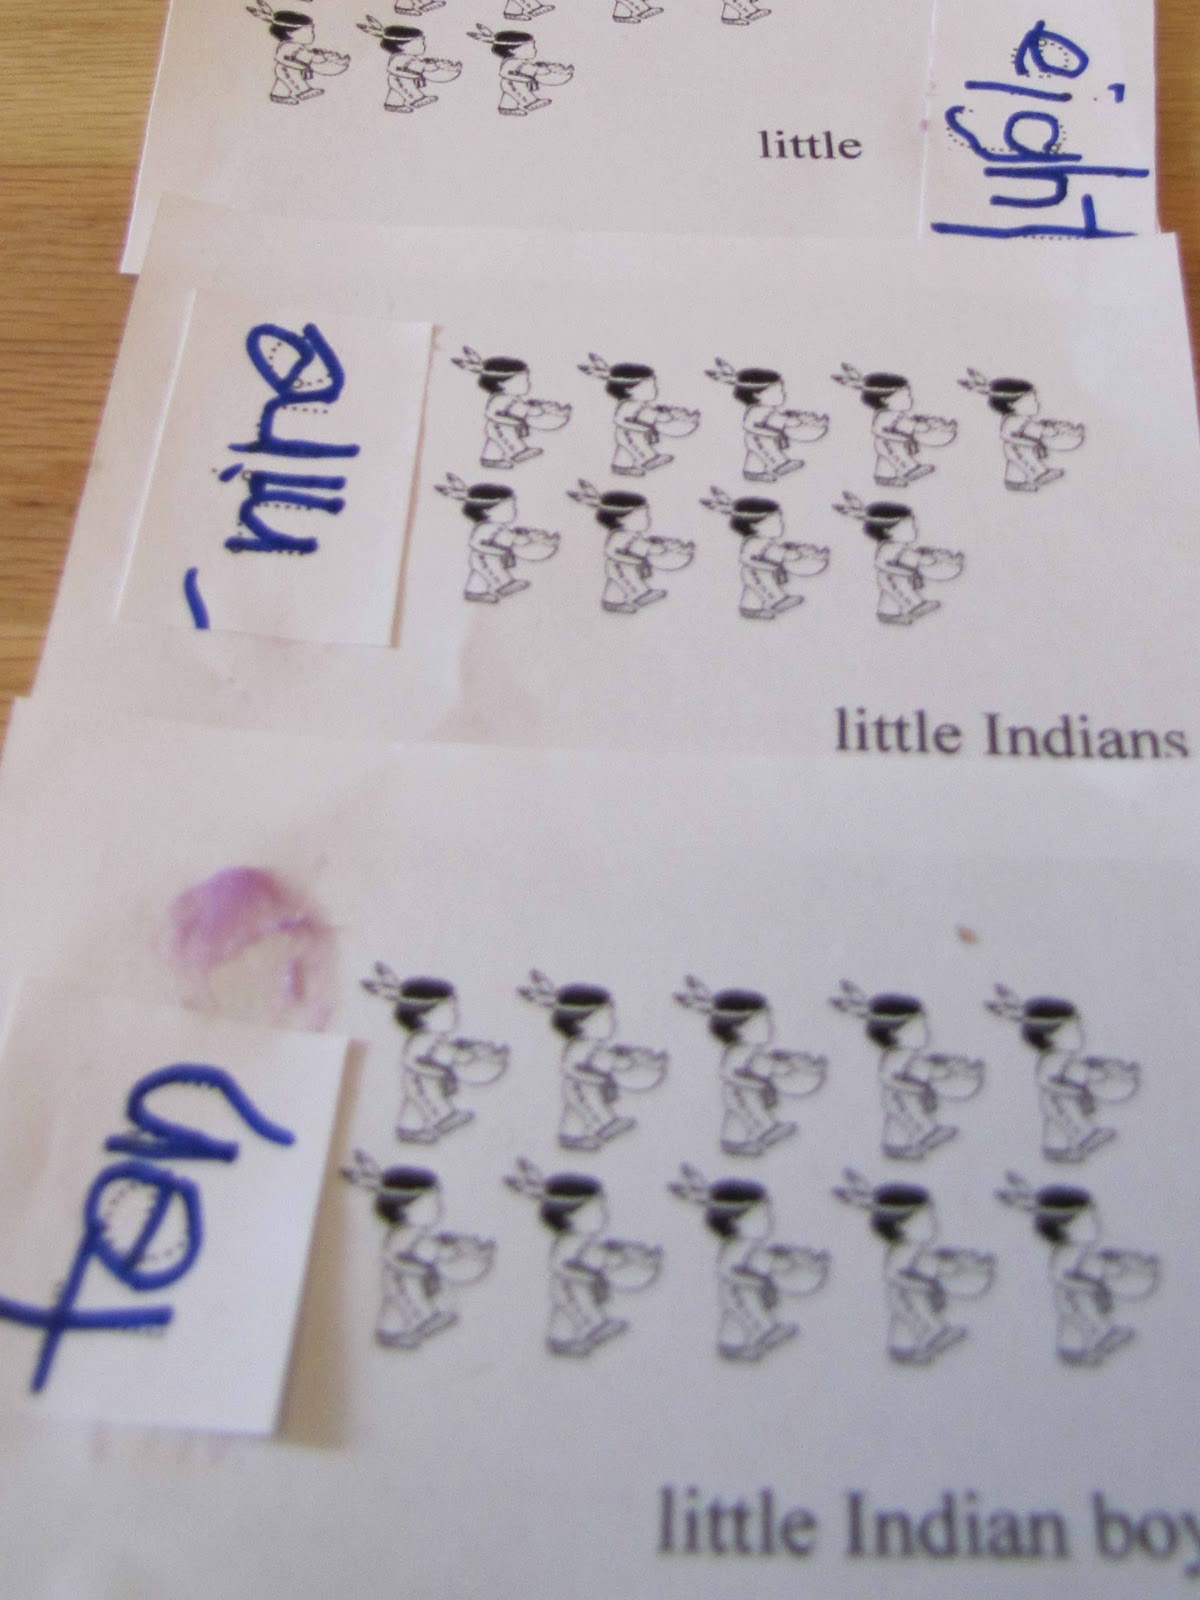 Indian Pictograph Worksheet